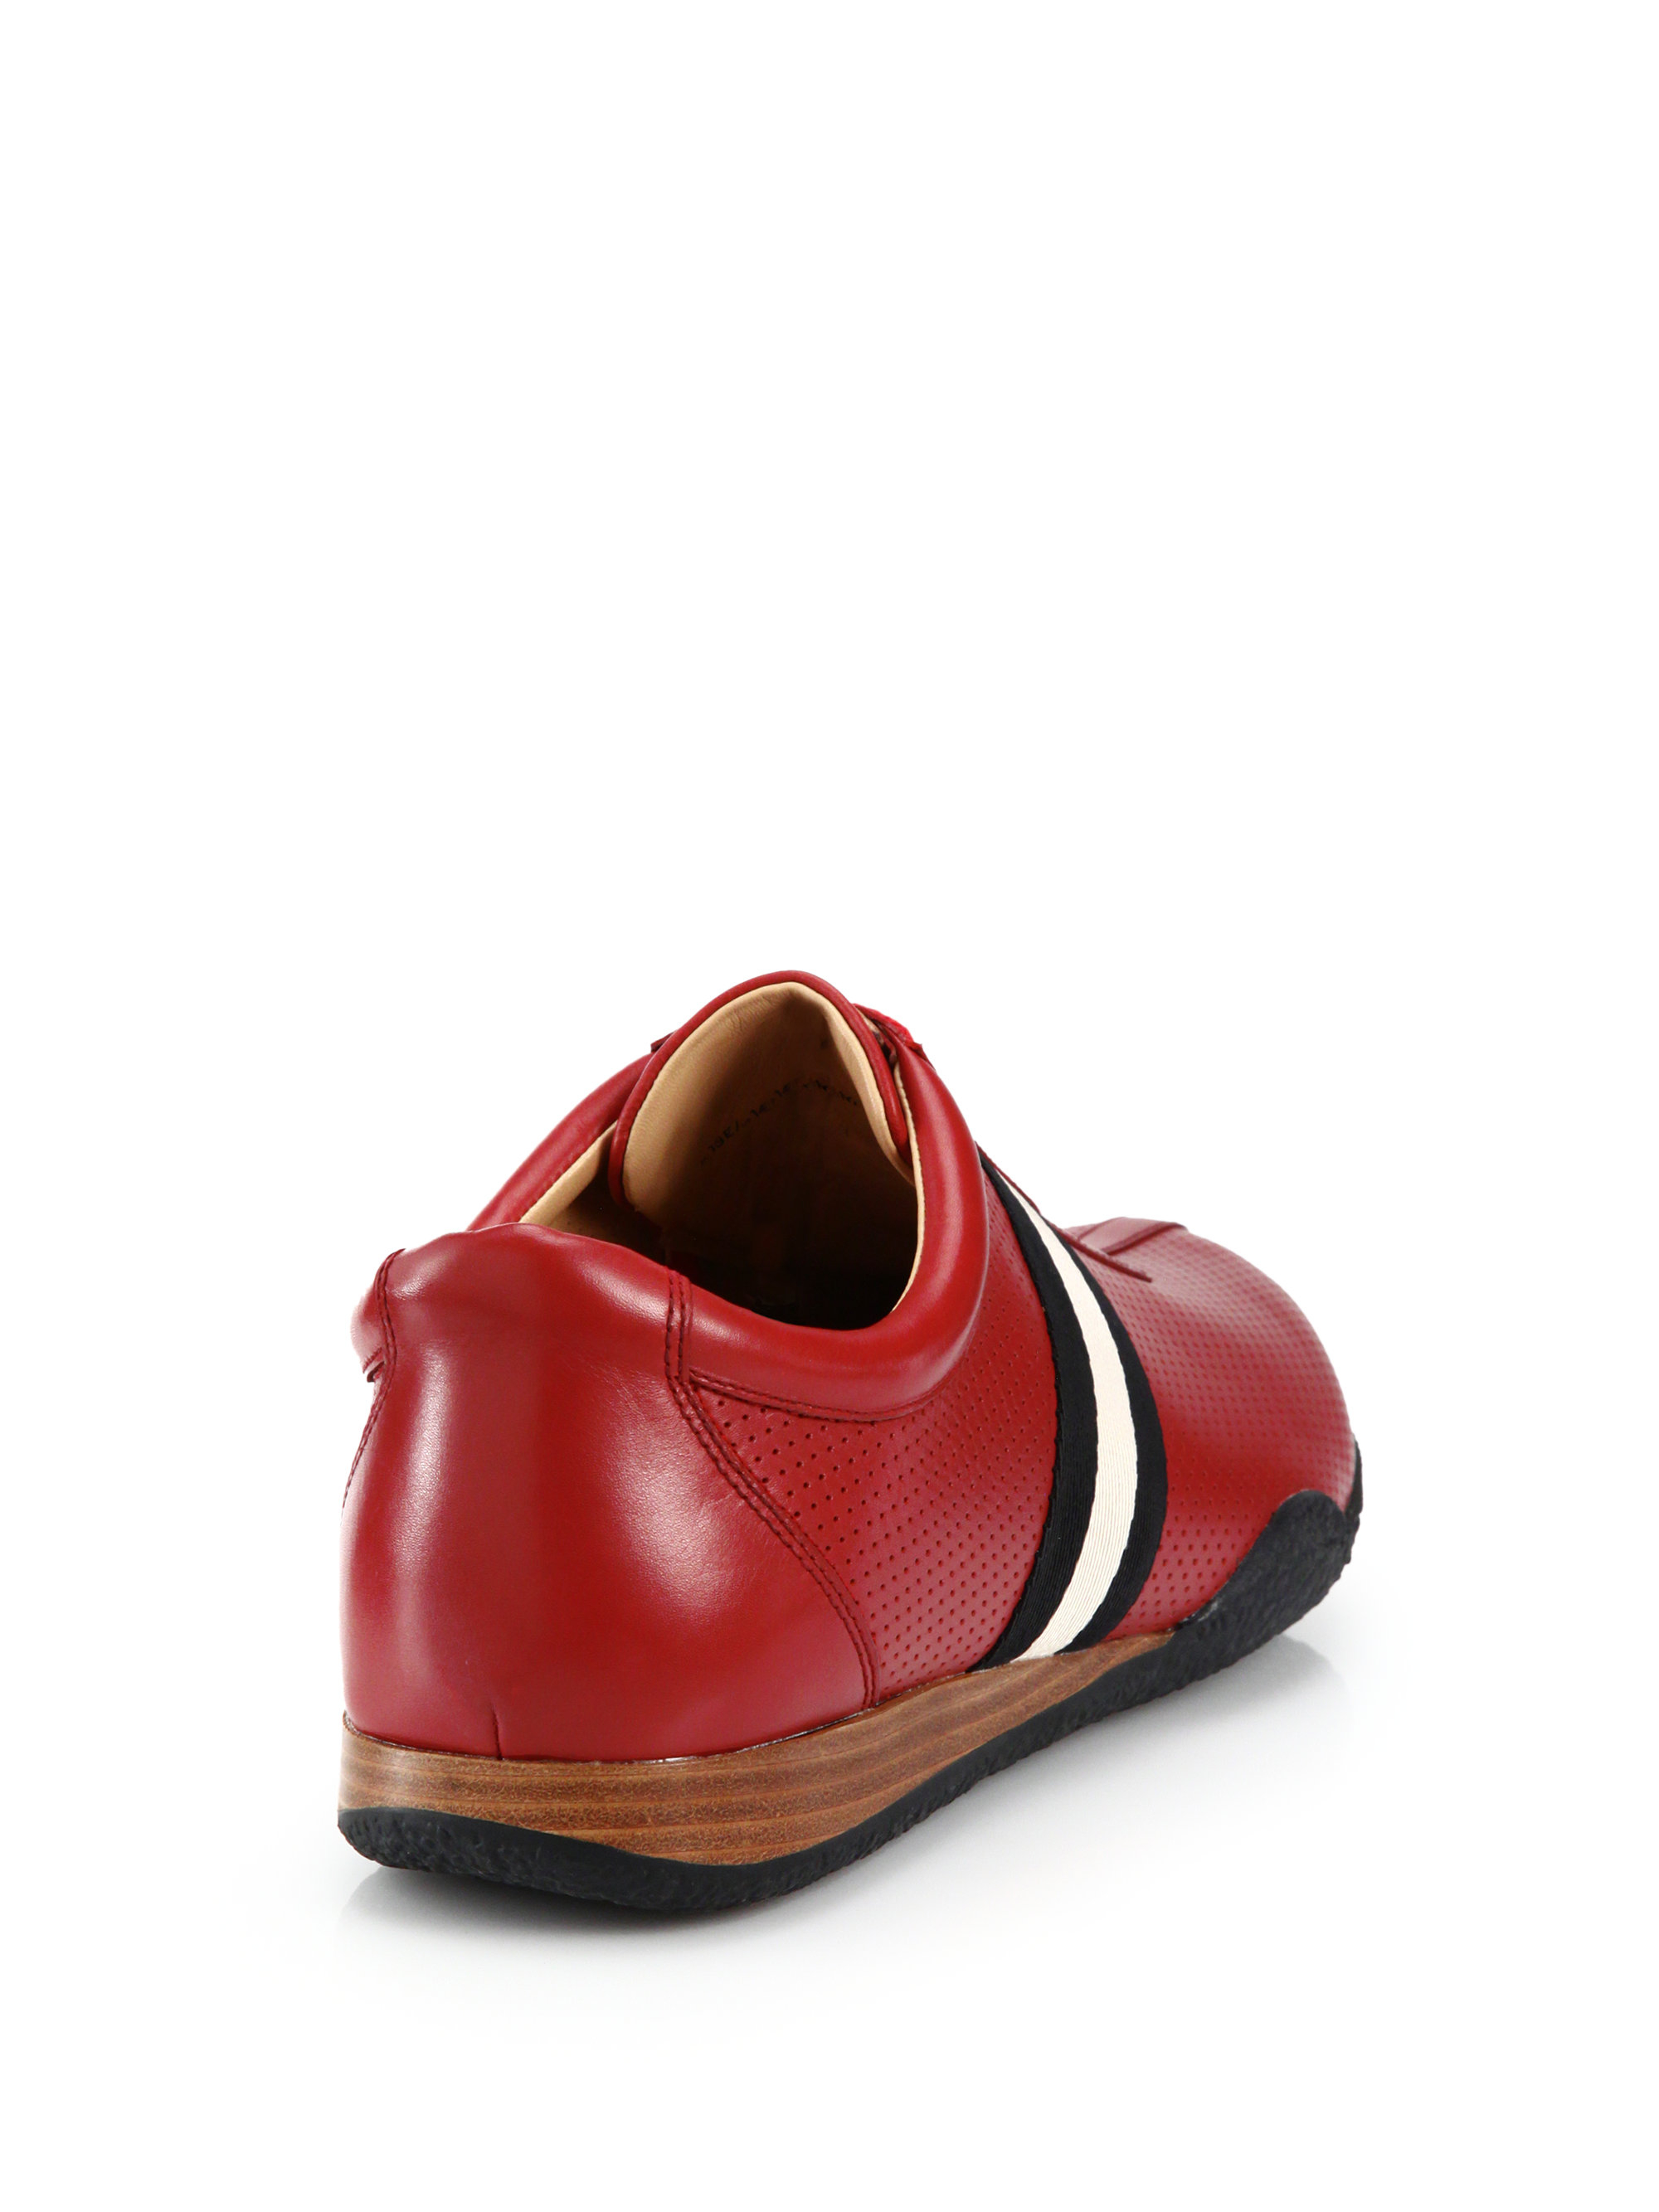 Bally Perforated Leather Lace Up Sneakers In Red For Men